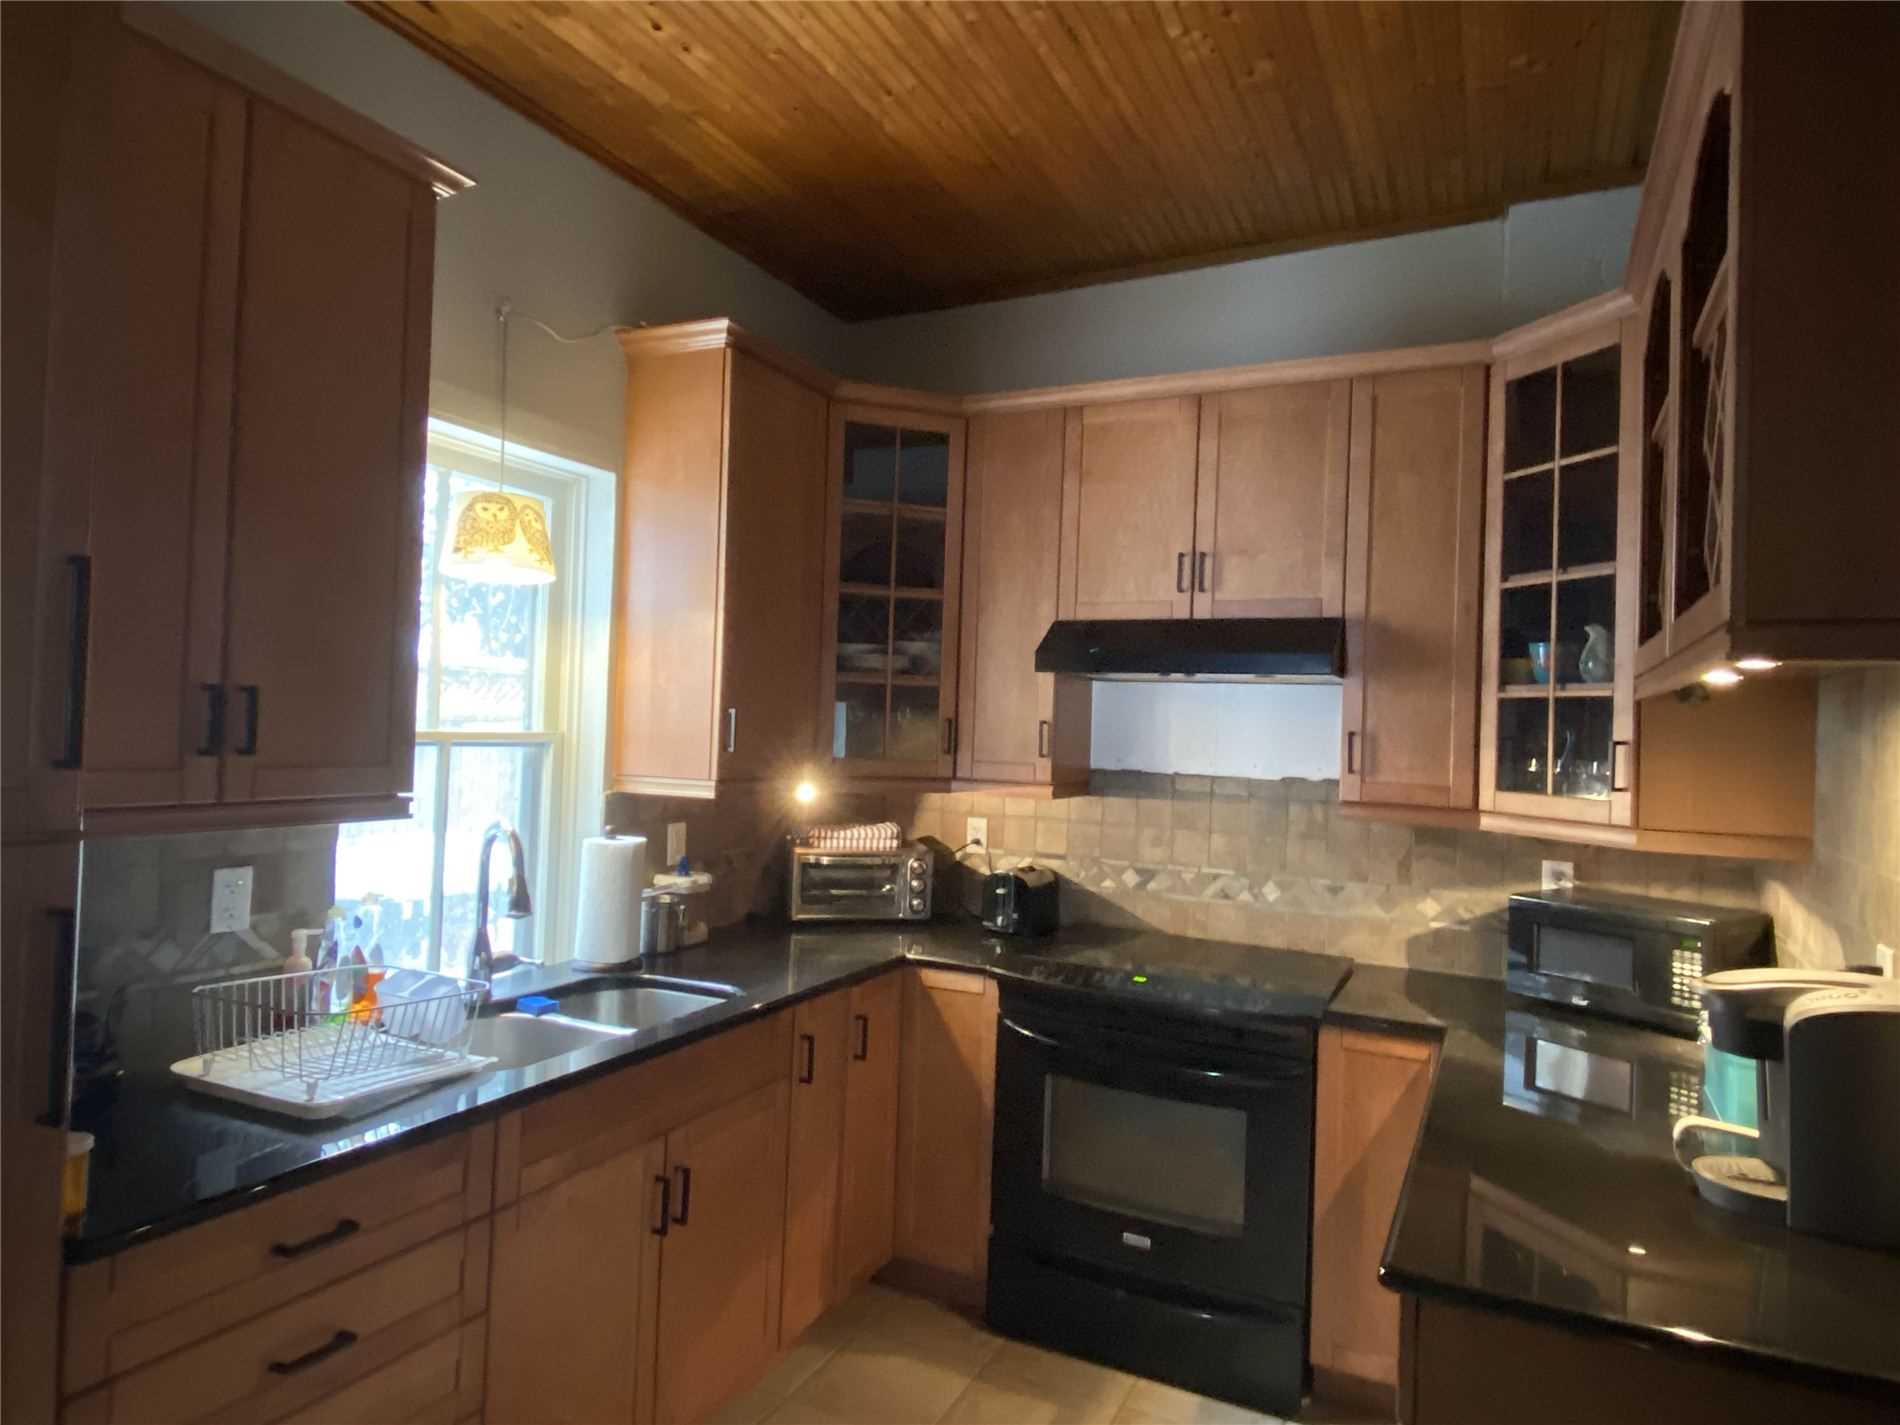 Image 4 of 8 showing inside of 2 Bedroom Detached Bungalow house for sale at 88 Delhi St, Guelph N1E4J7